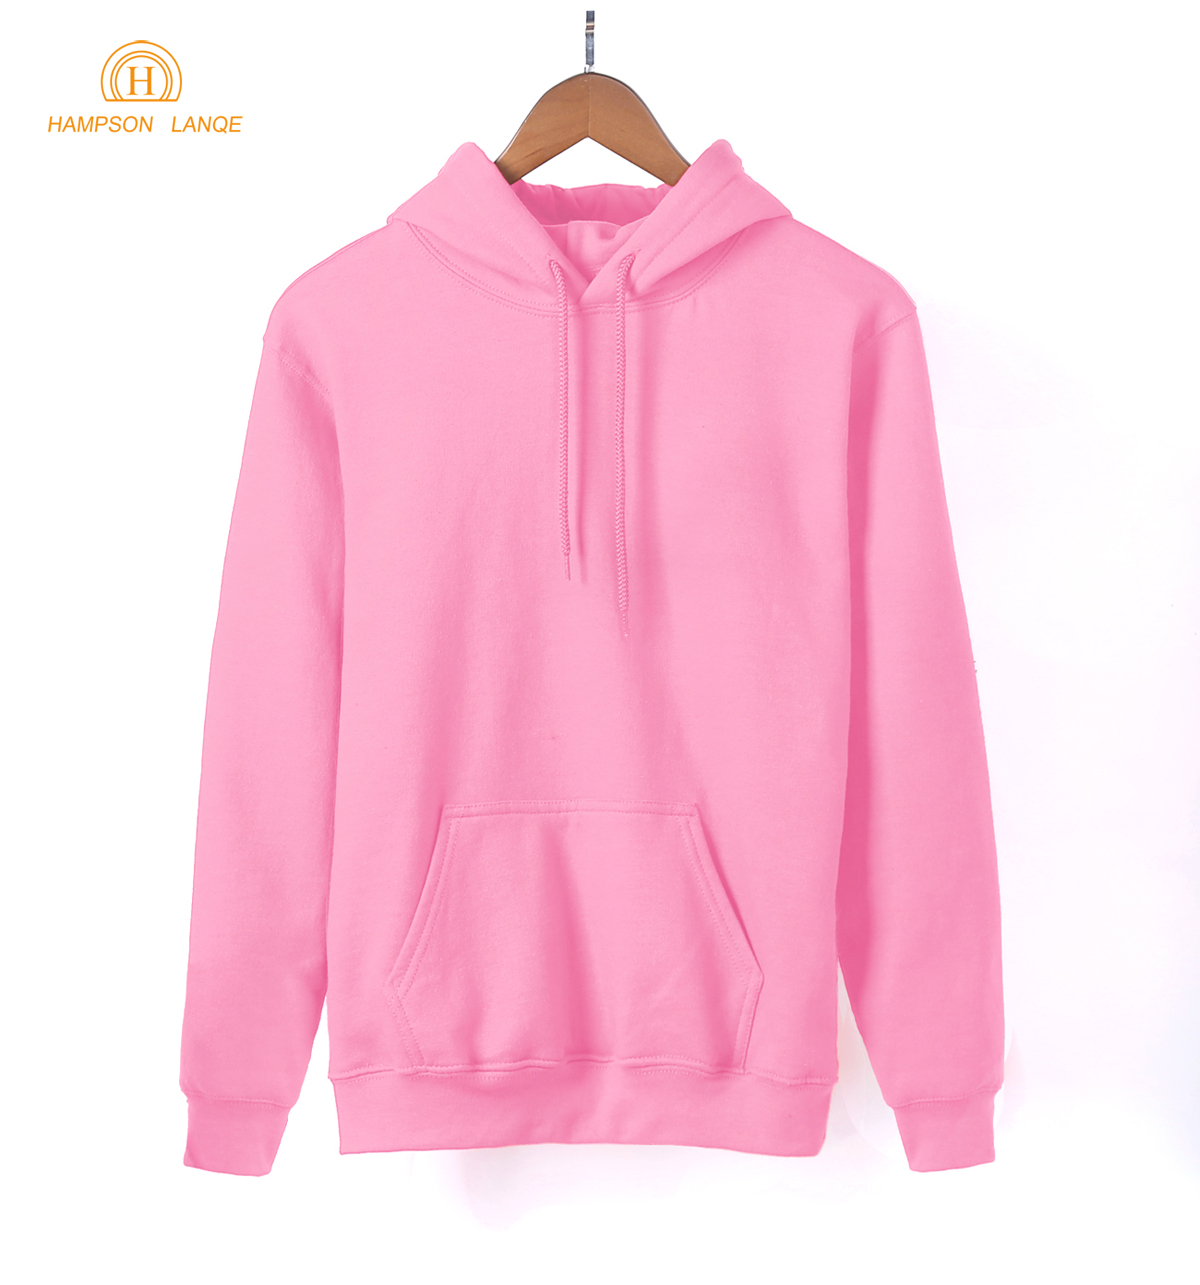 2018 New Arrival Spring Kawaii Women Sweatshirts Kpop Solid Hoodies Warm Fleece Harajuku Hoodie Black White Gray Pink Red Blue